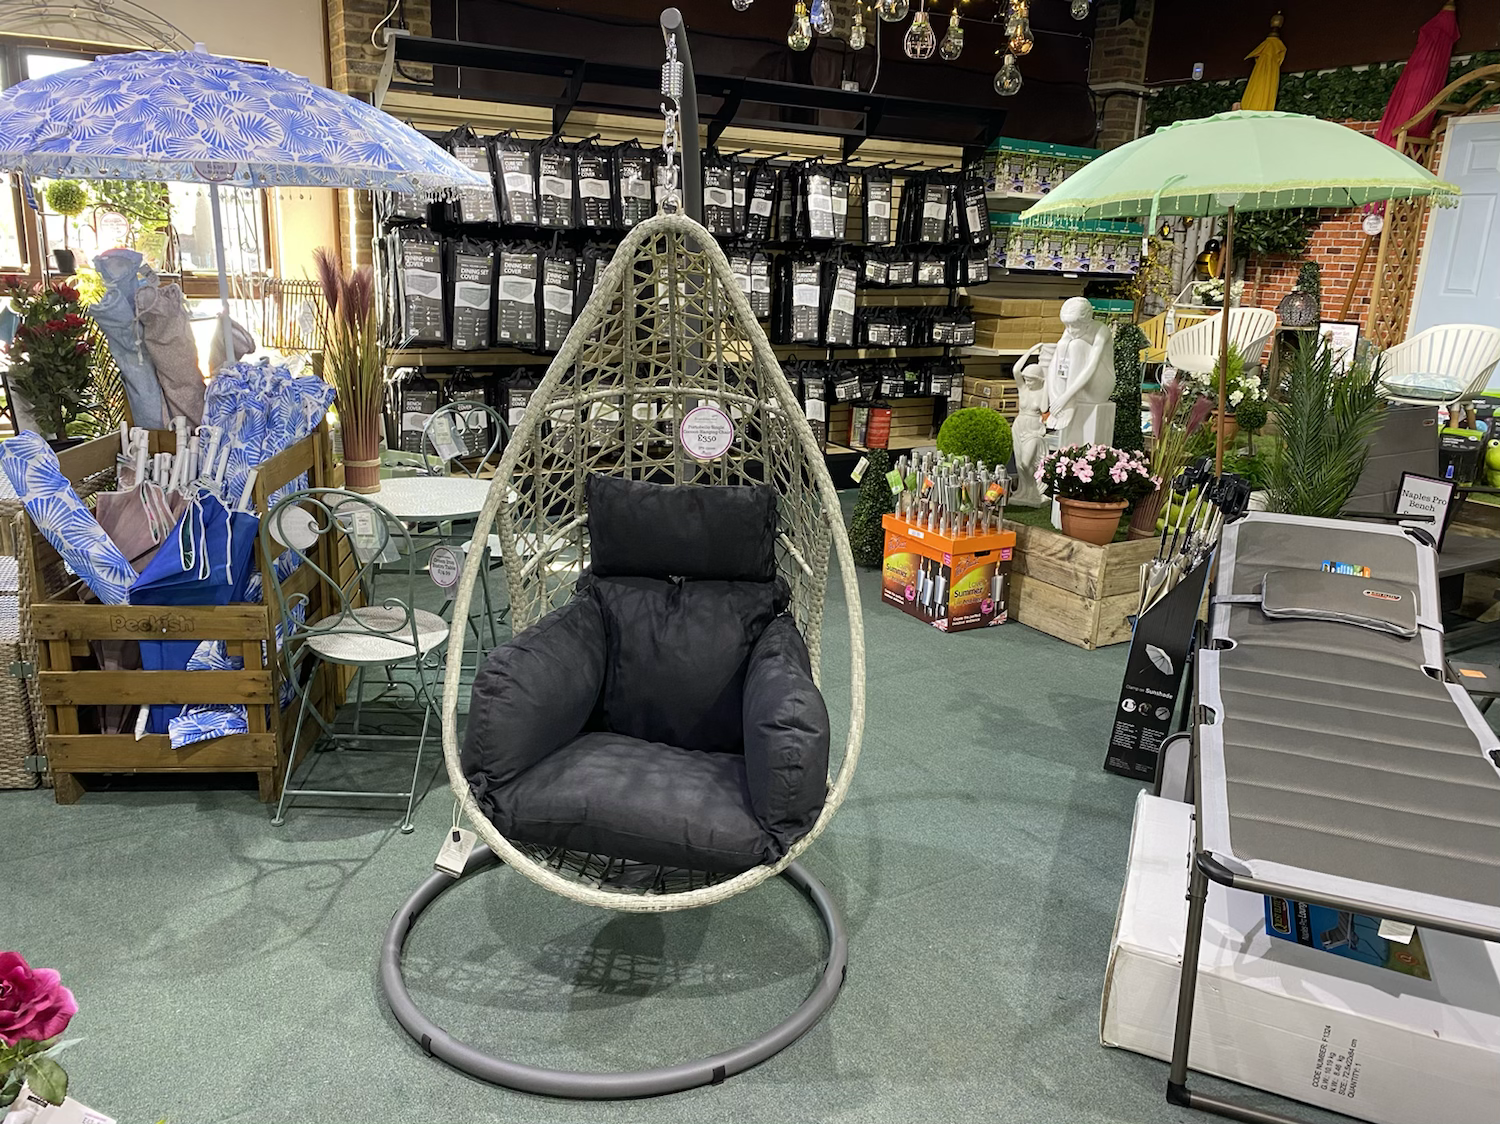 Portobello Single Cocoon Hanging Chair - £350